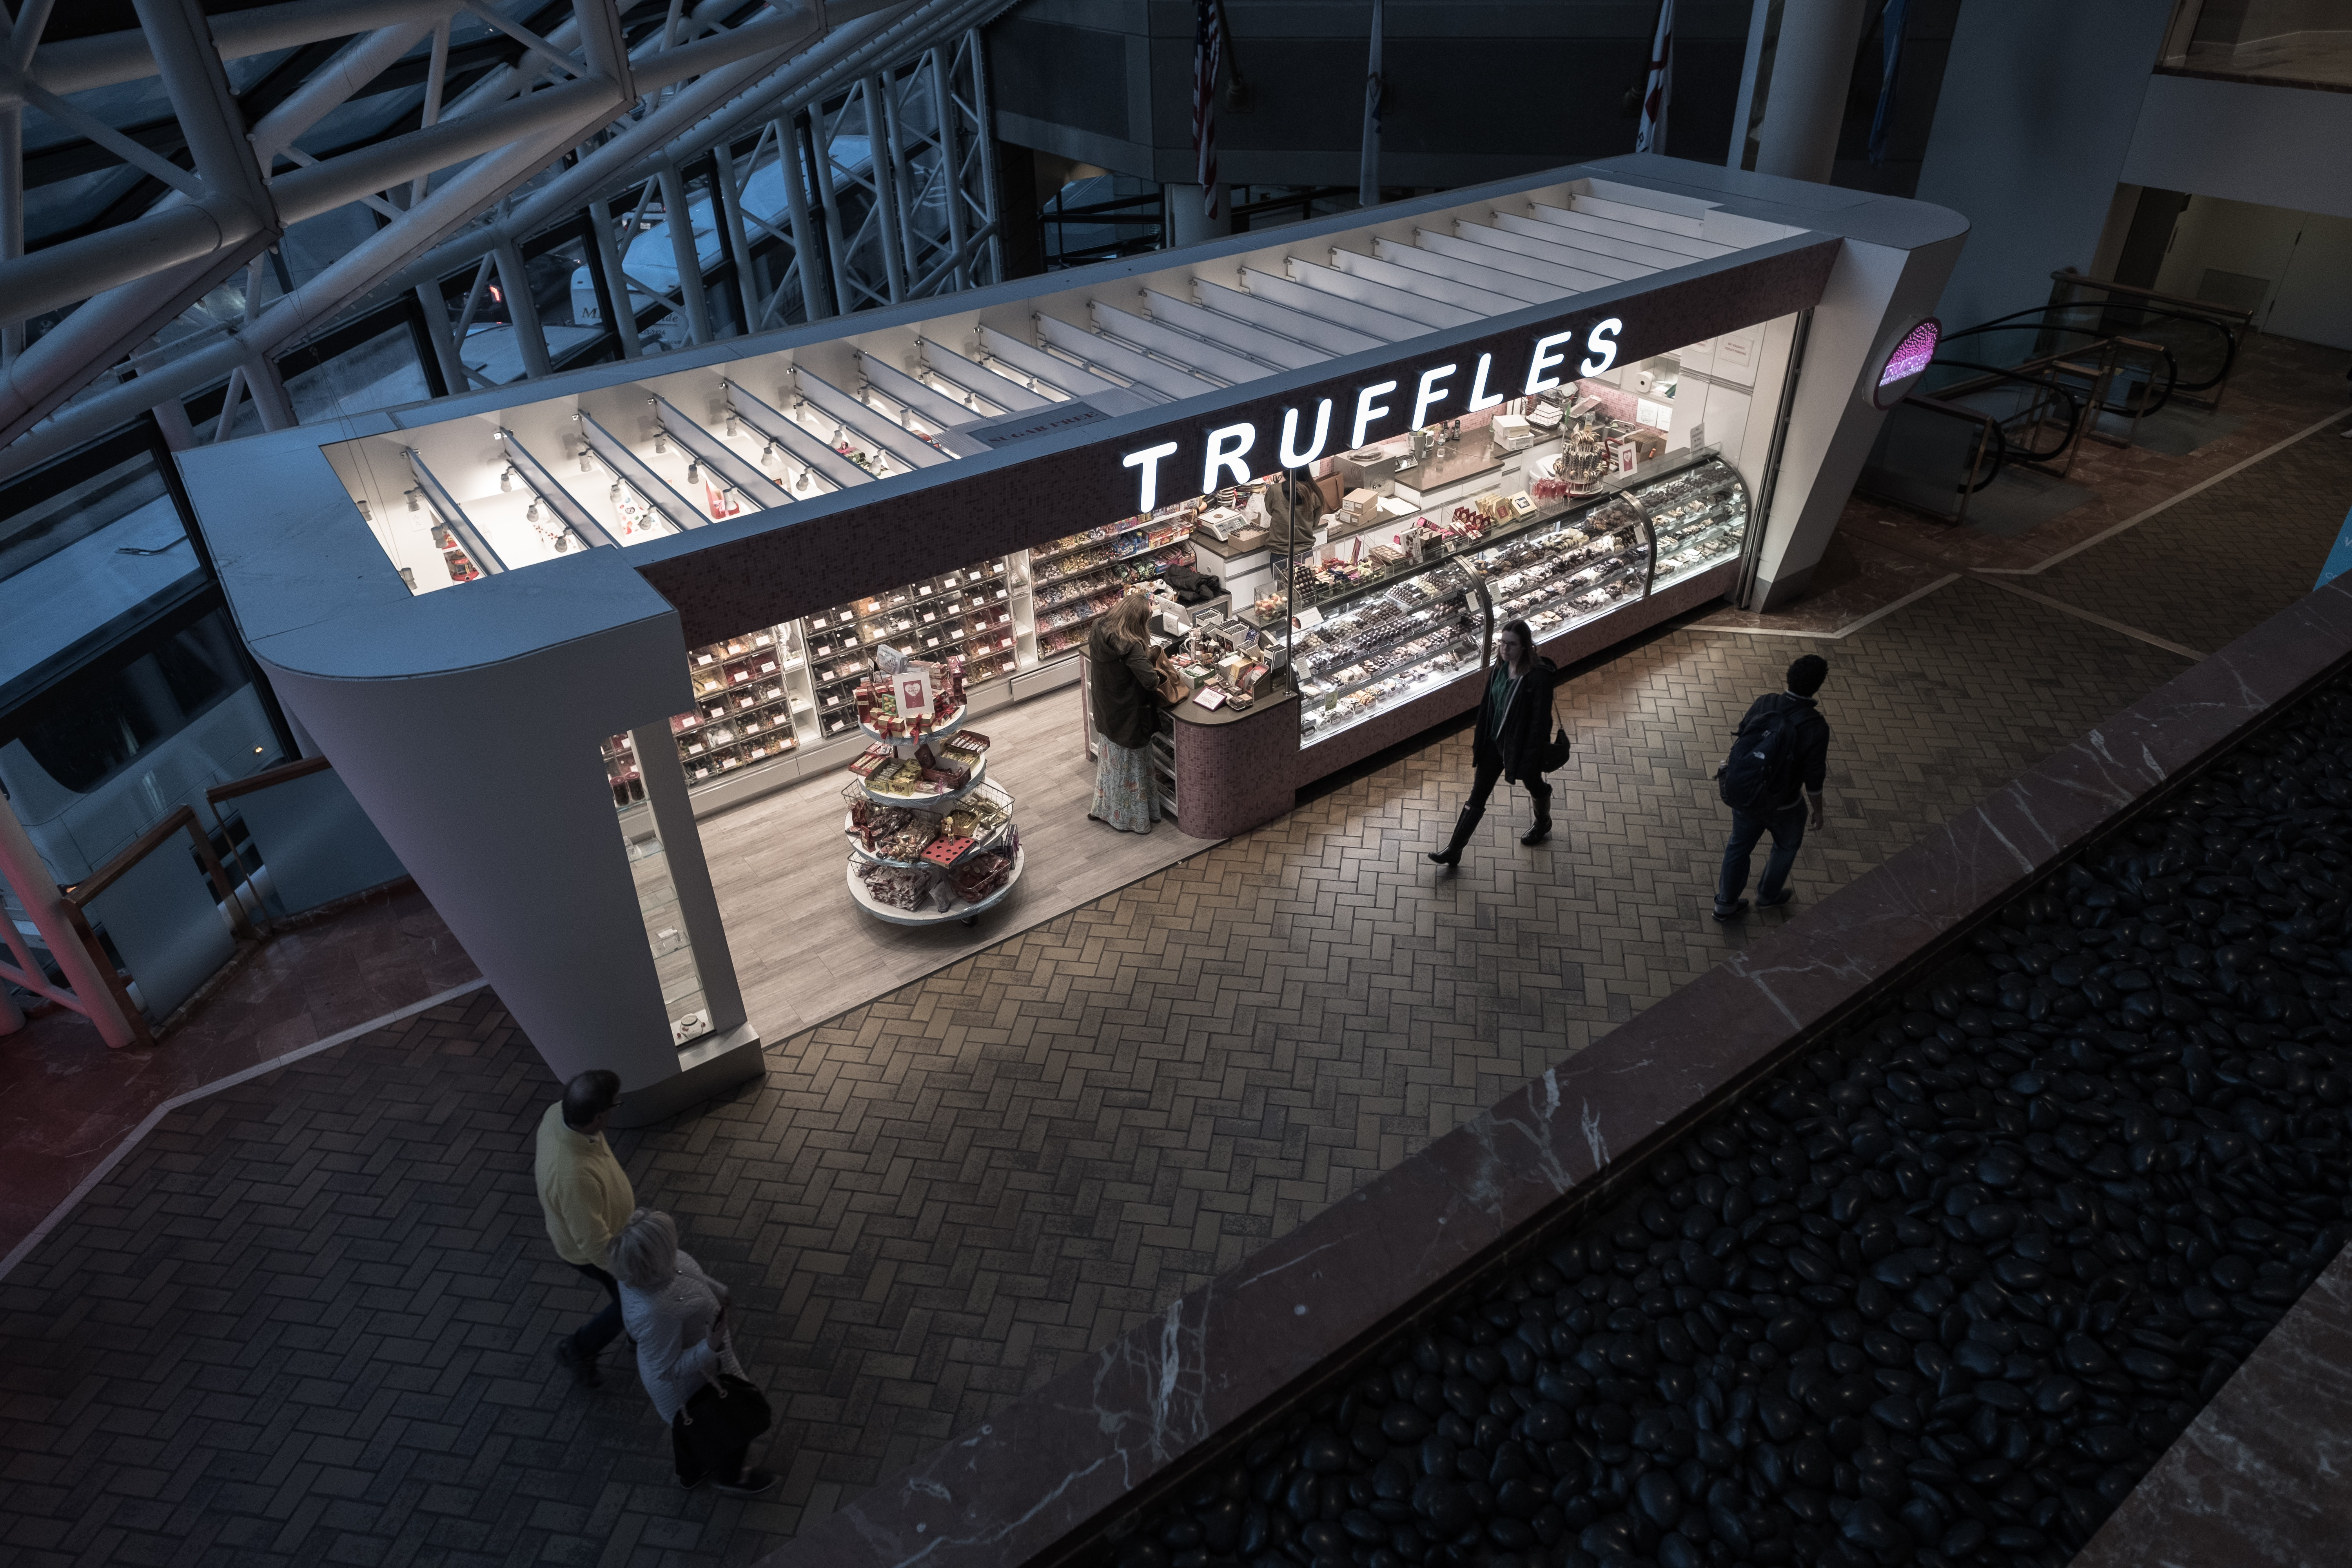 Outdoor truffle shop at a mall in Boston at night